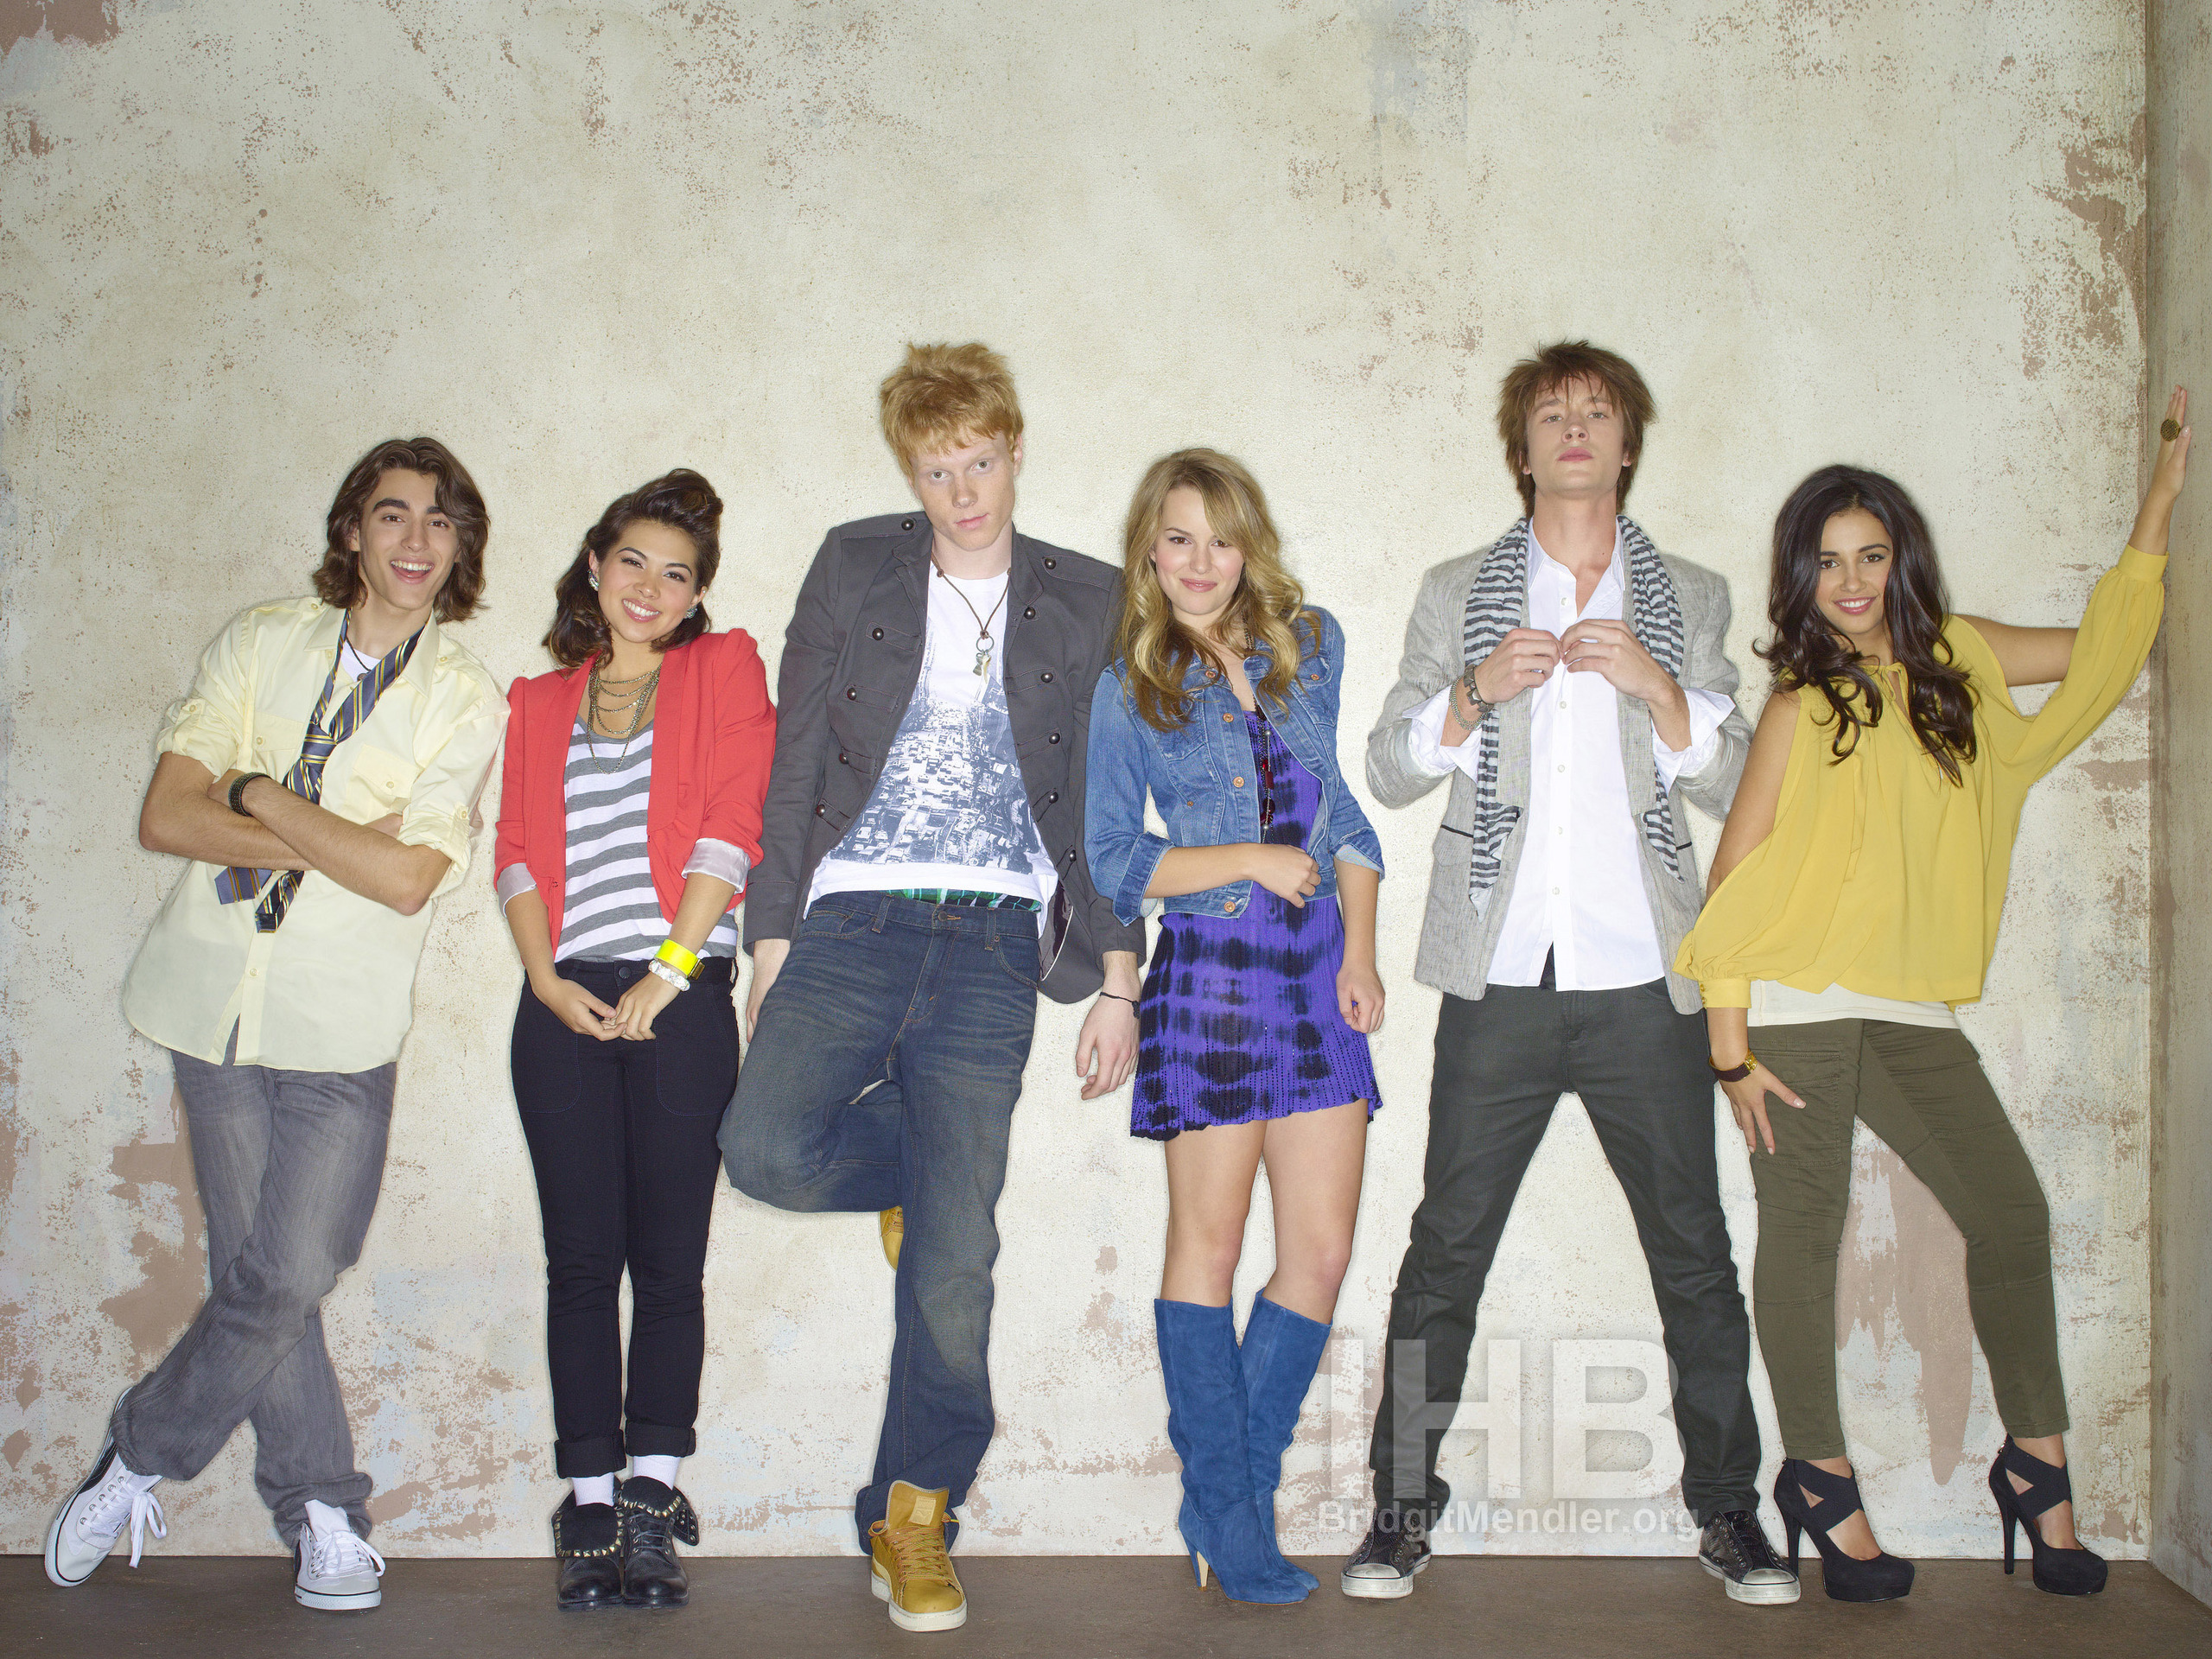 Lemonade Mouth Photo Shoots - lemonade-mouth photo